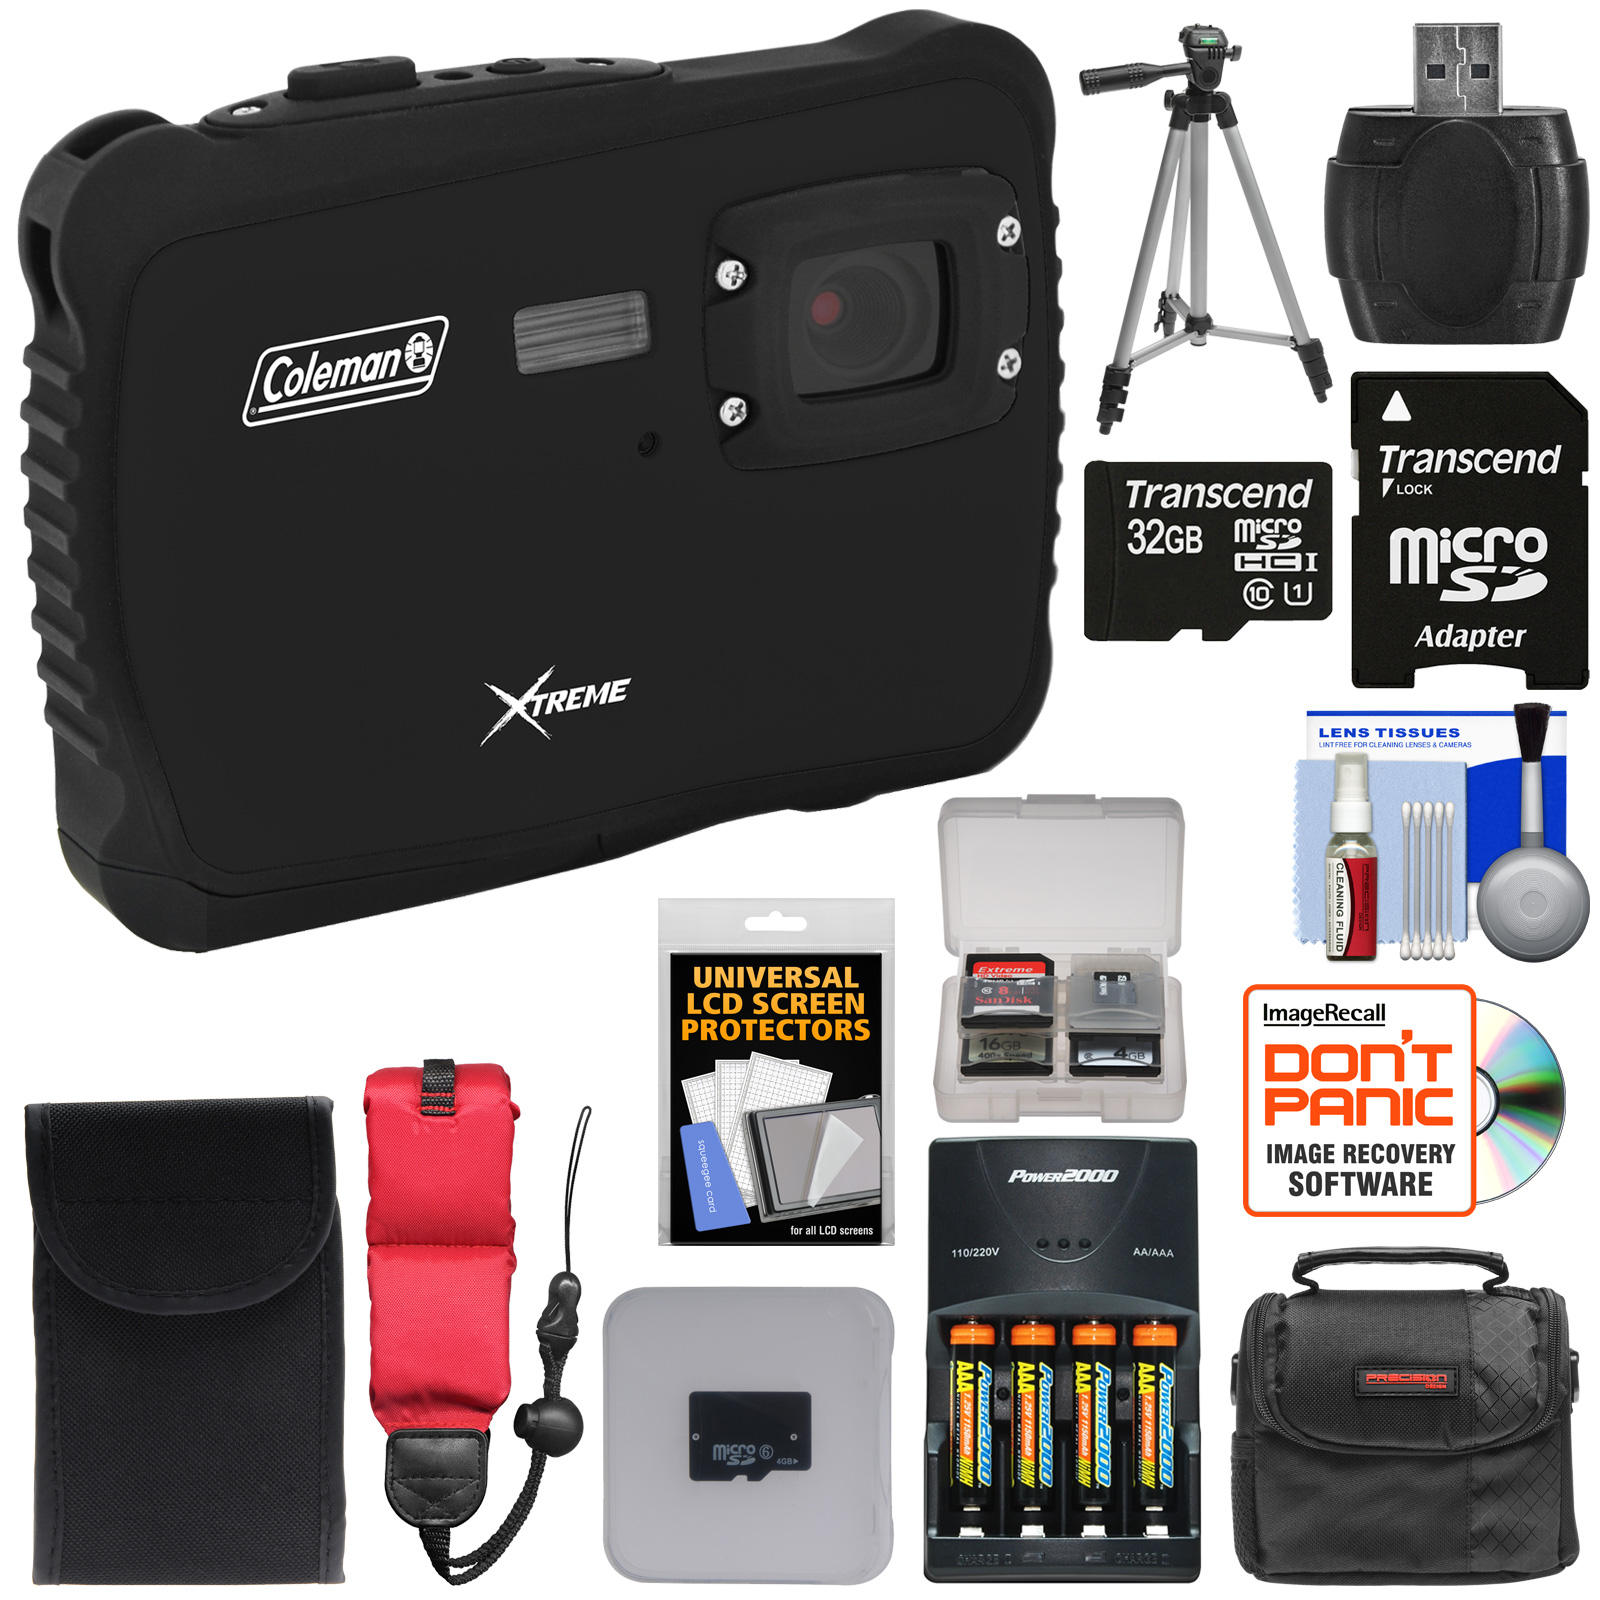 Coleman Xtreme C6WP HD Shock & Waterproof Digital Camera (Black) with 32GB Card   Batteries & Charger   Case   Tripod   Kit